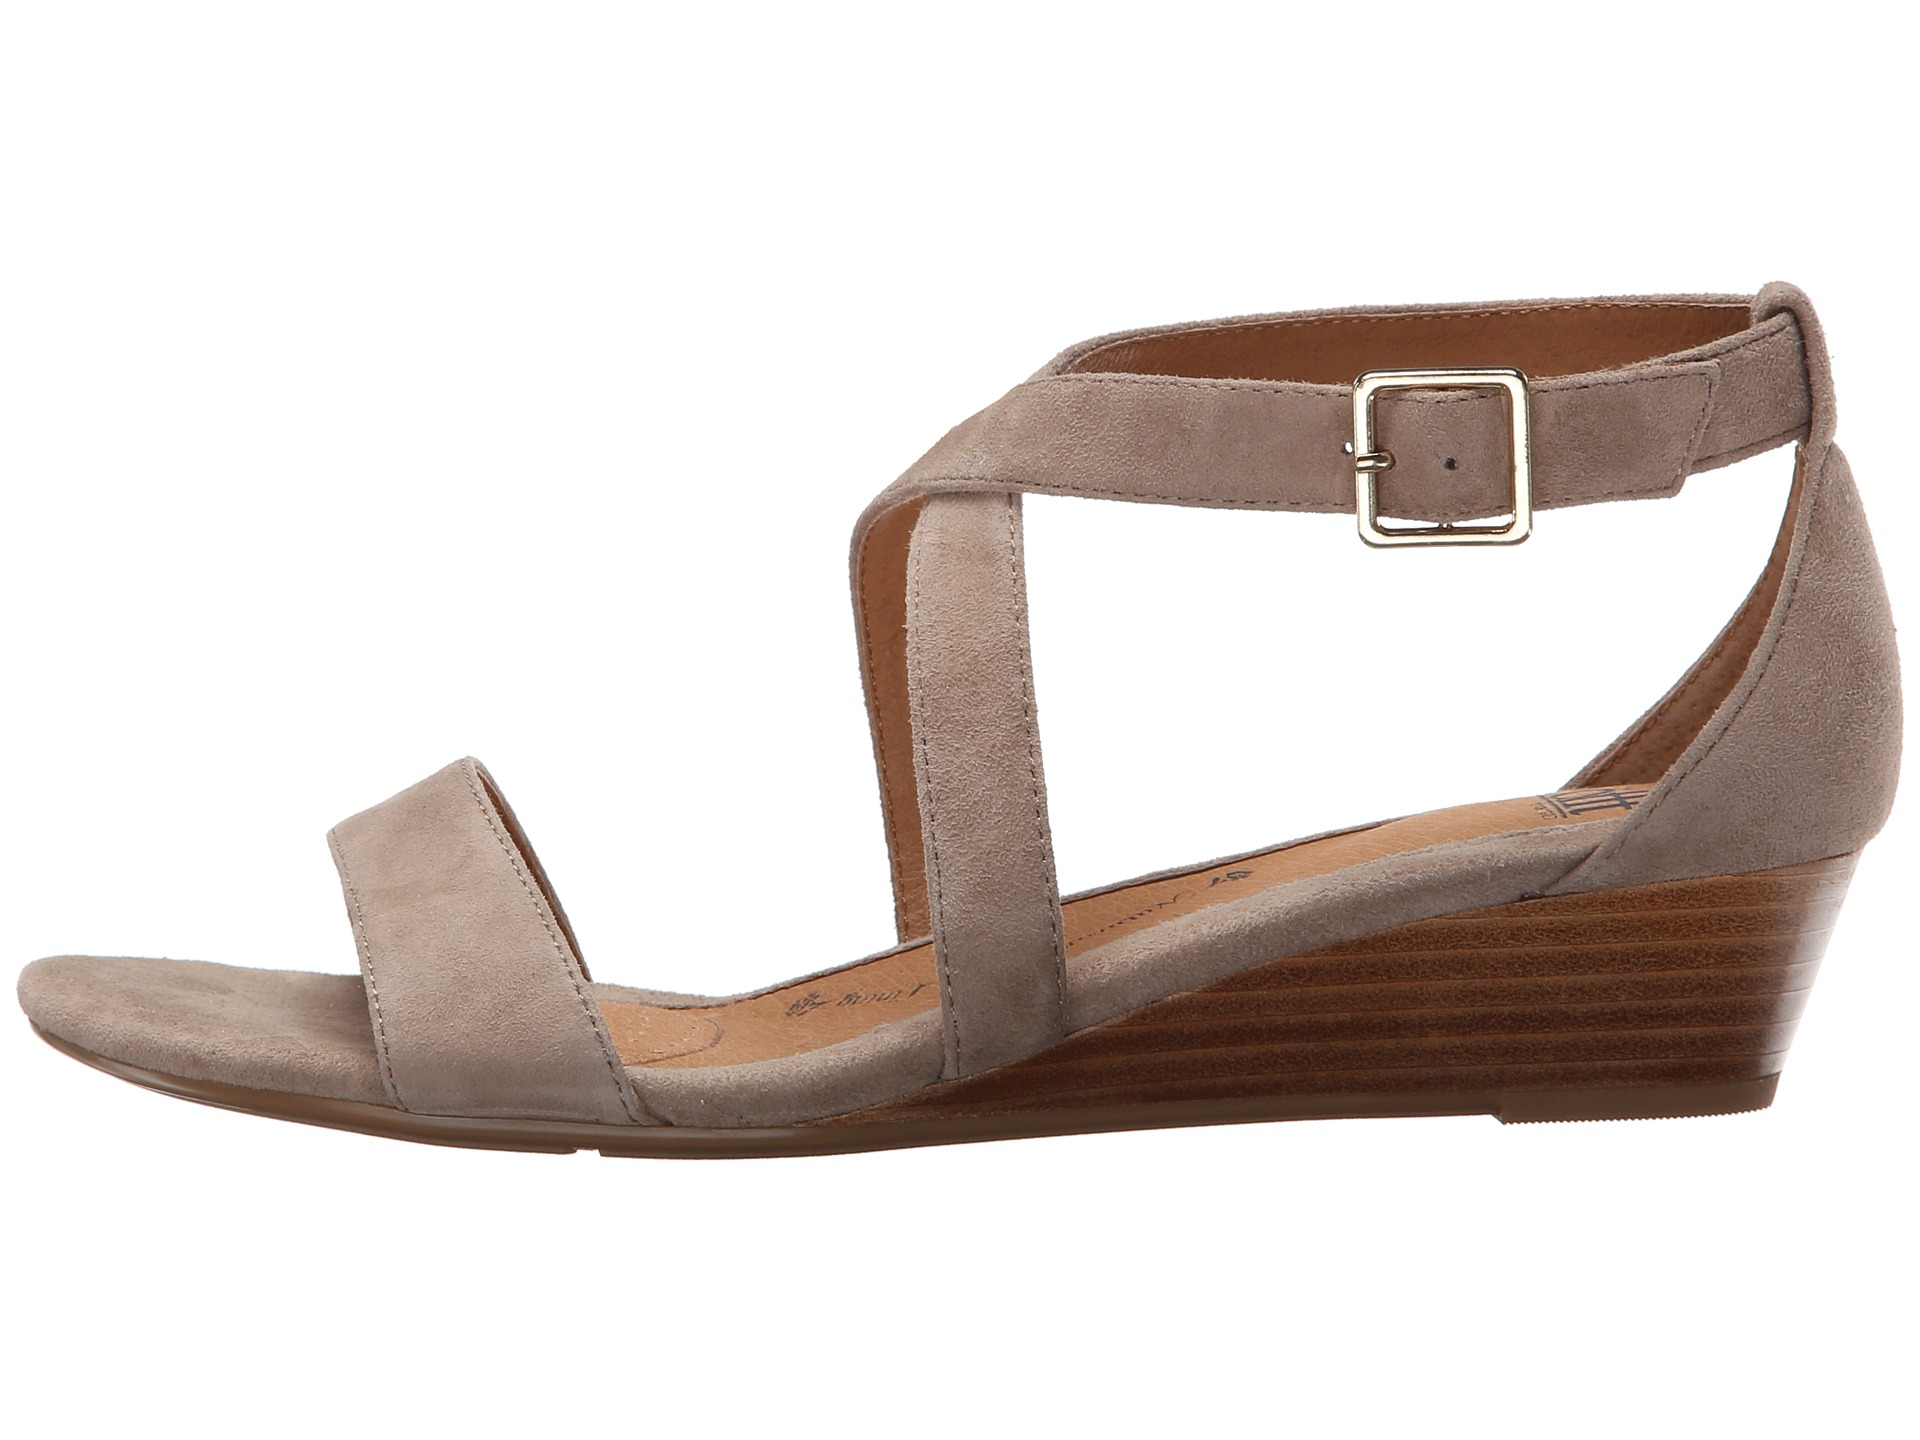 1920x1440 Sofft Innis Strappy Suede Or Patent Uppers In A Sandal Wedge